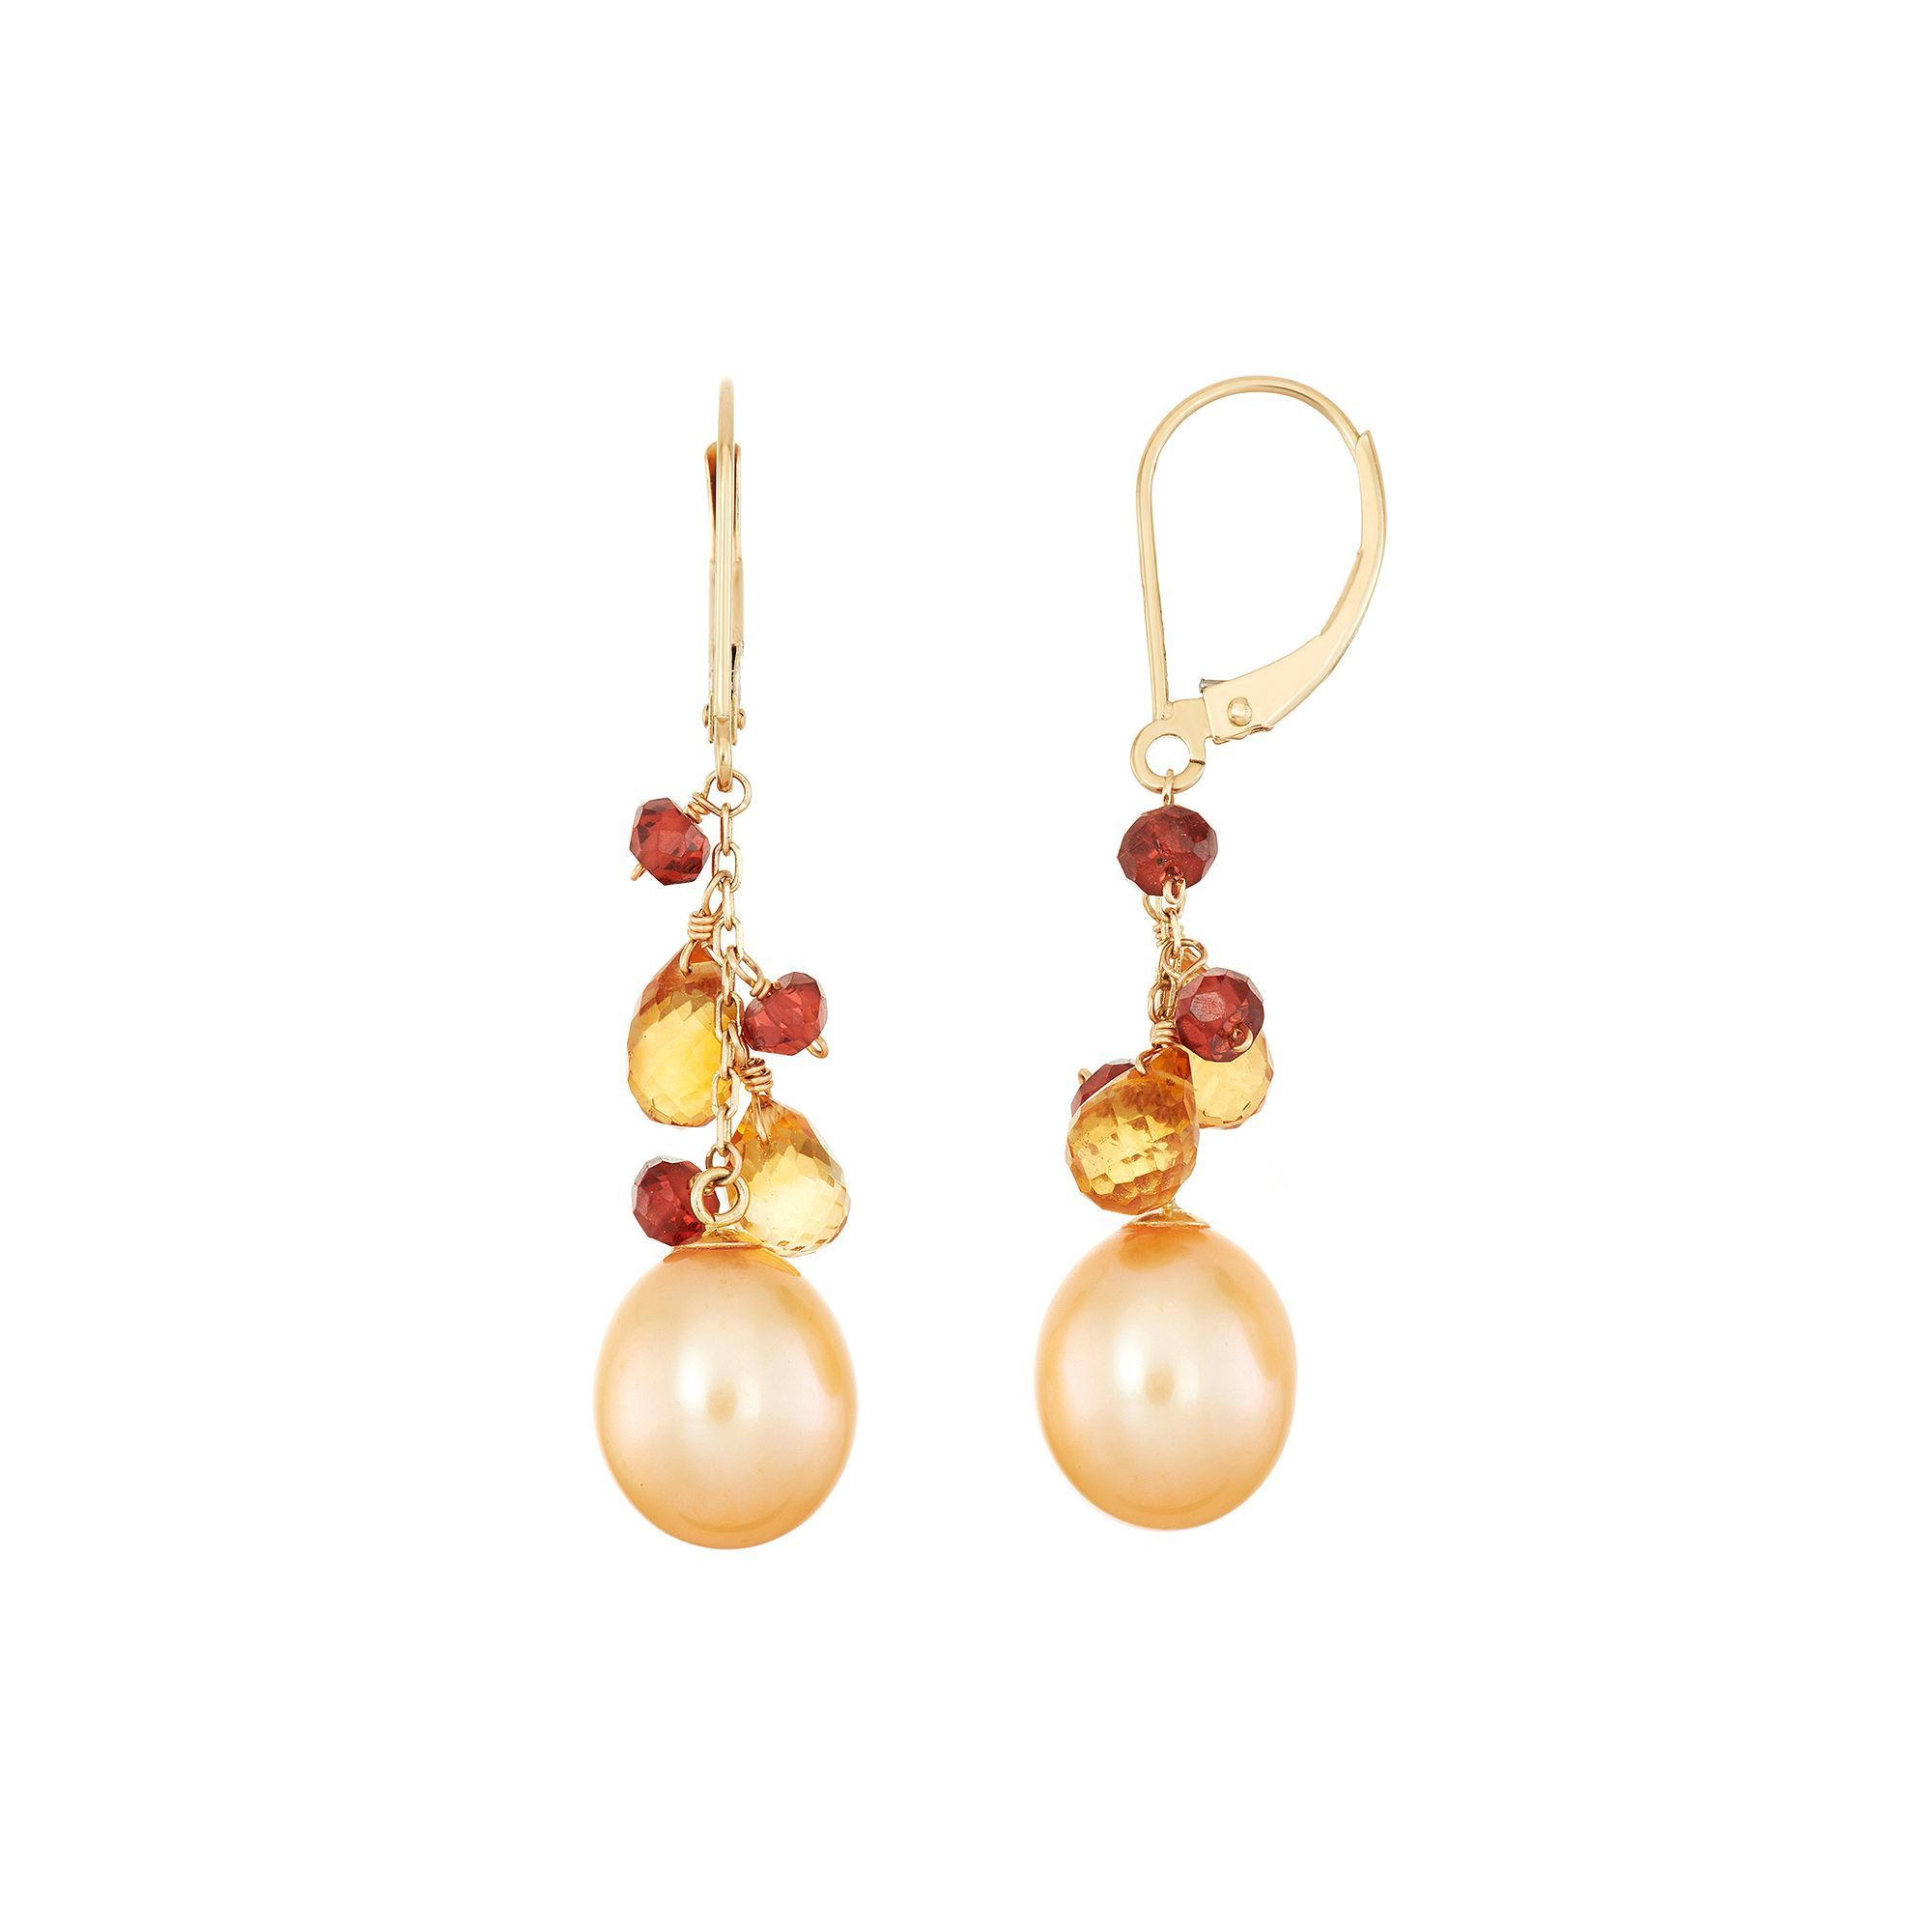 gemstone rosa viola dorata pin orecchini lesjoliesdepanpan earrings catena con e di chandelier multicolor su nappina agata lunghi